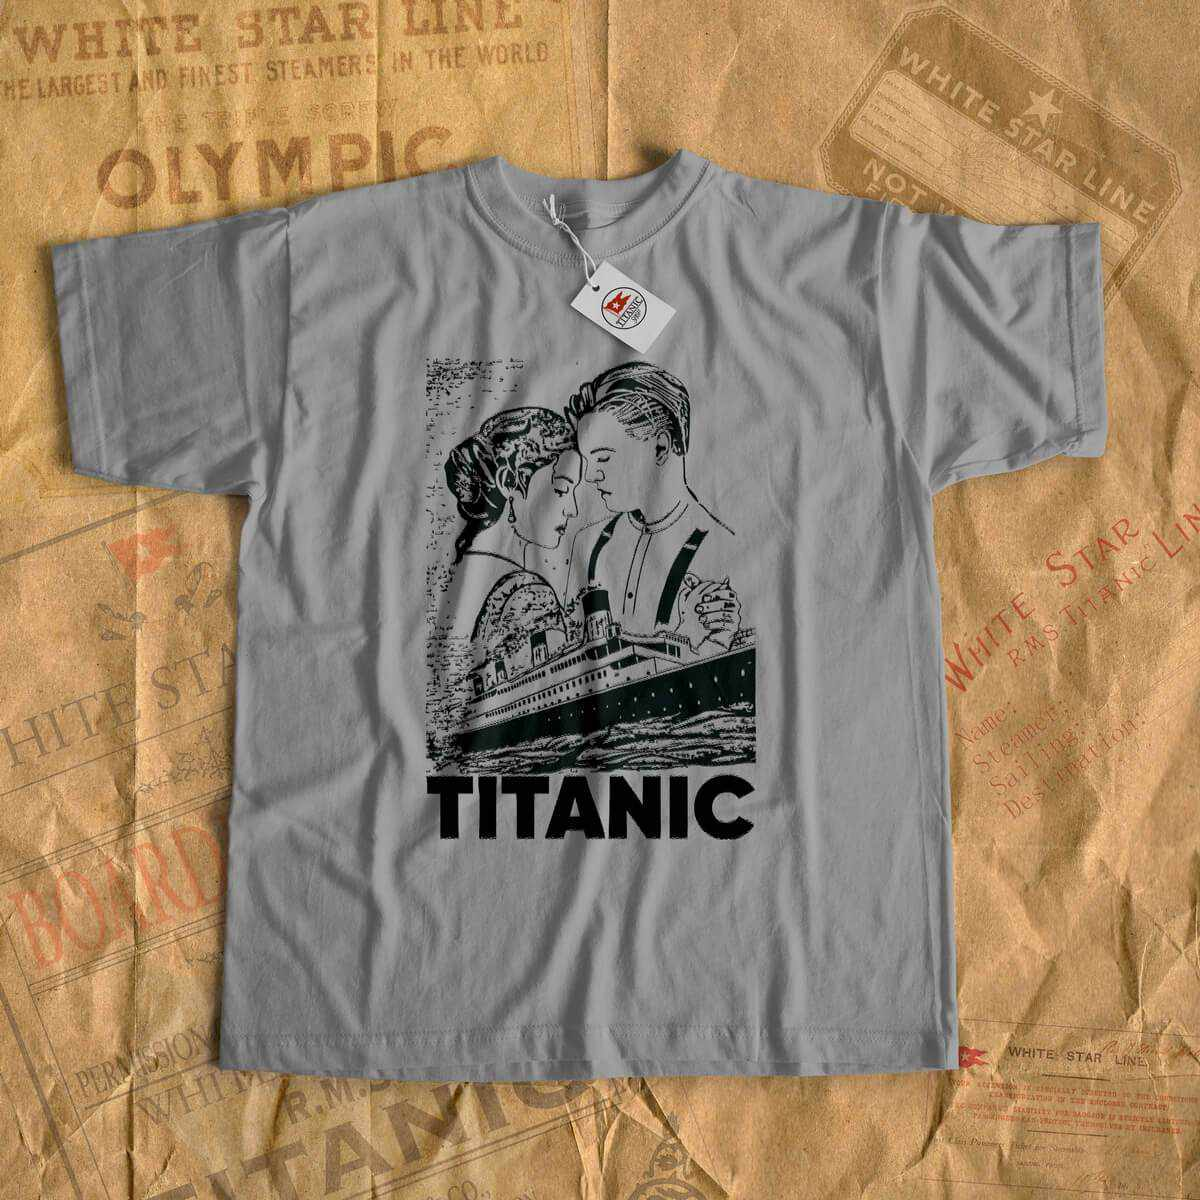 Jack Rose tshirt, Titanic retro vintage shirt, tees with Titanic art. Gift for boyfriend, gift for girlfriend-T-shirt new-Titanic shop-titanic-tee-shirt-tshirt-1912-Titanic shop